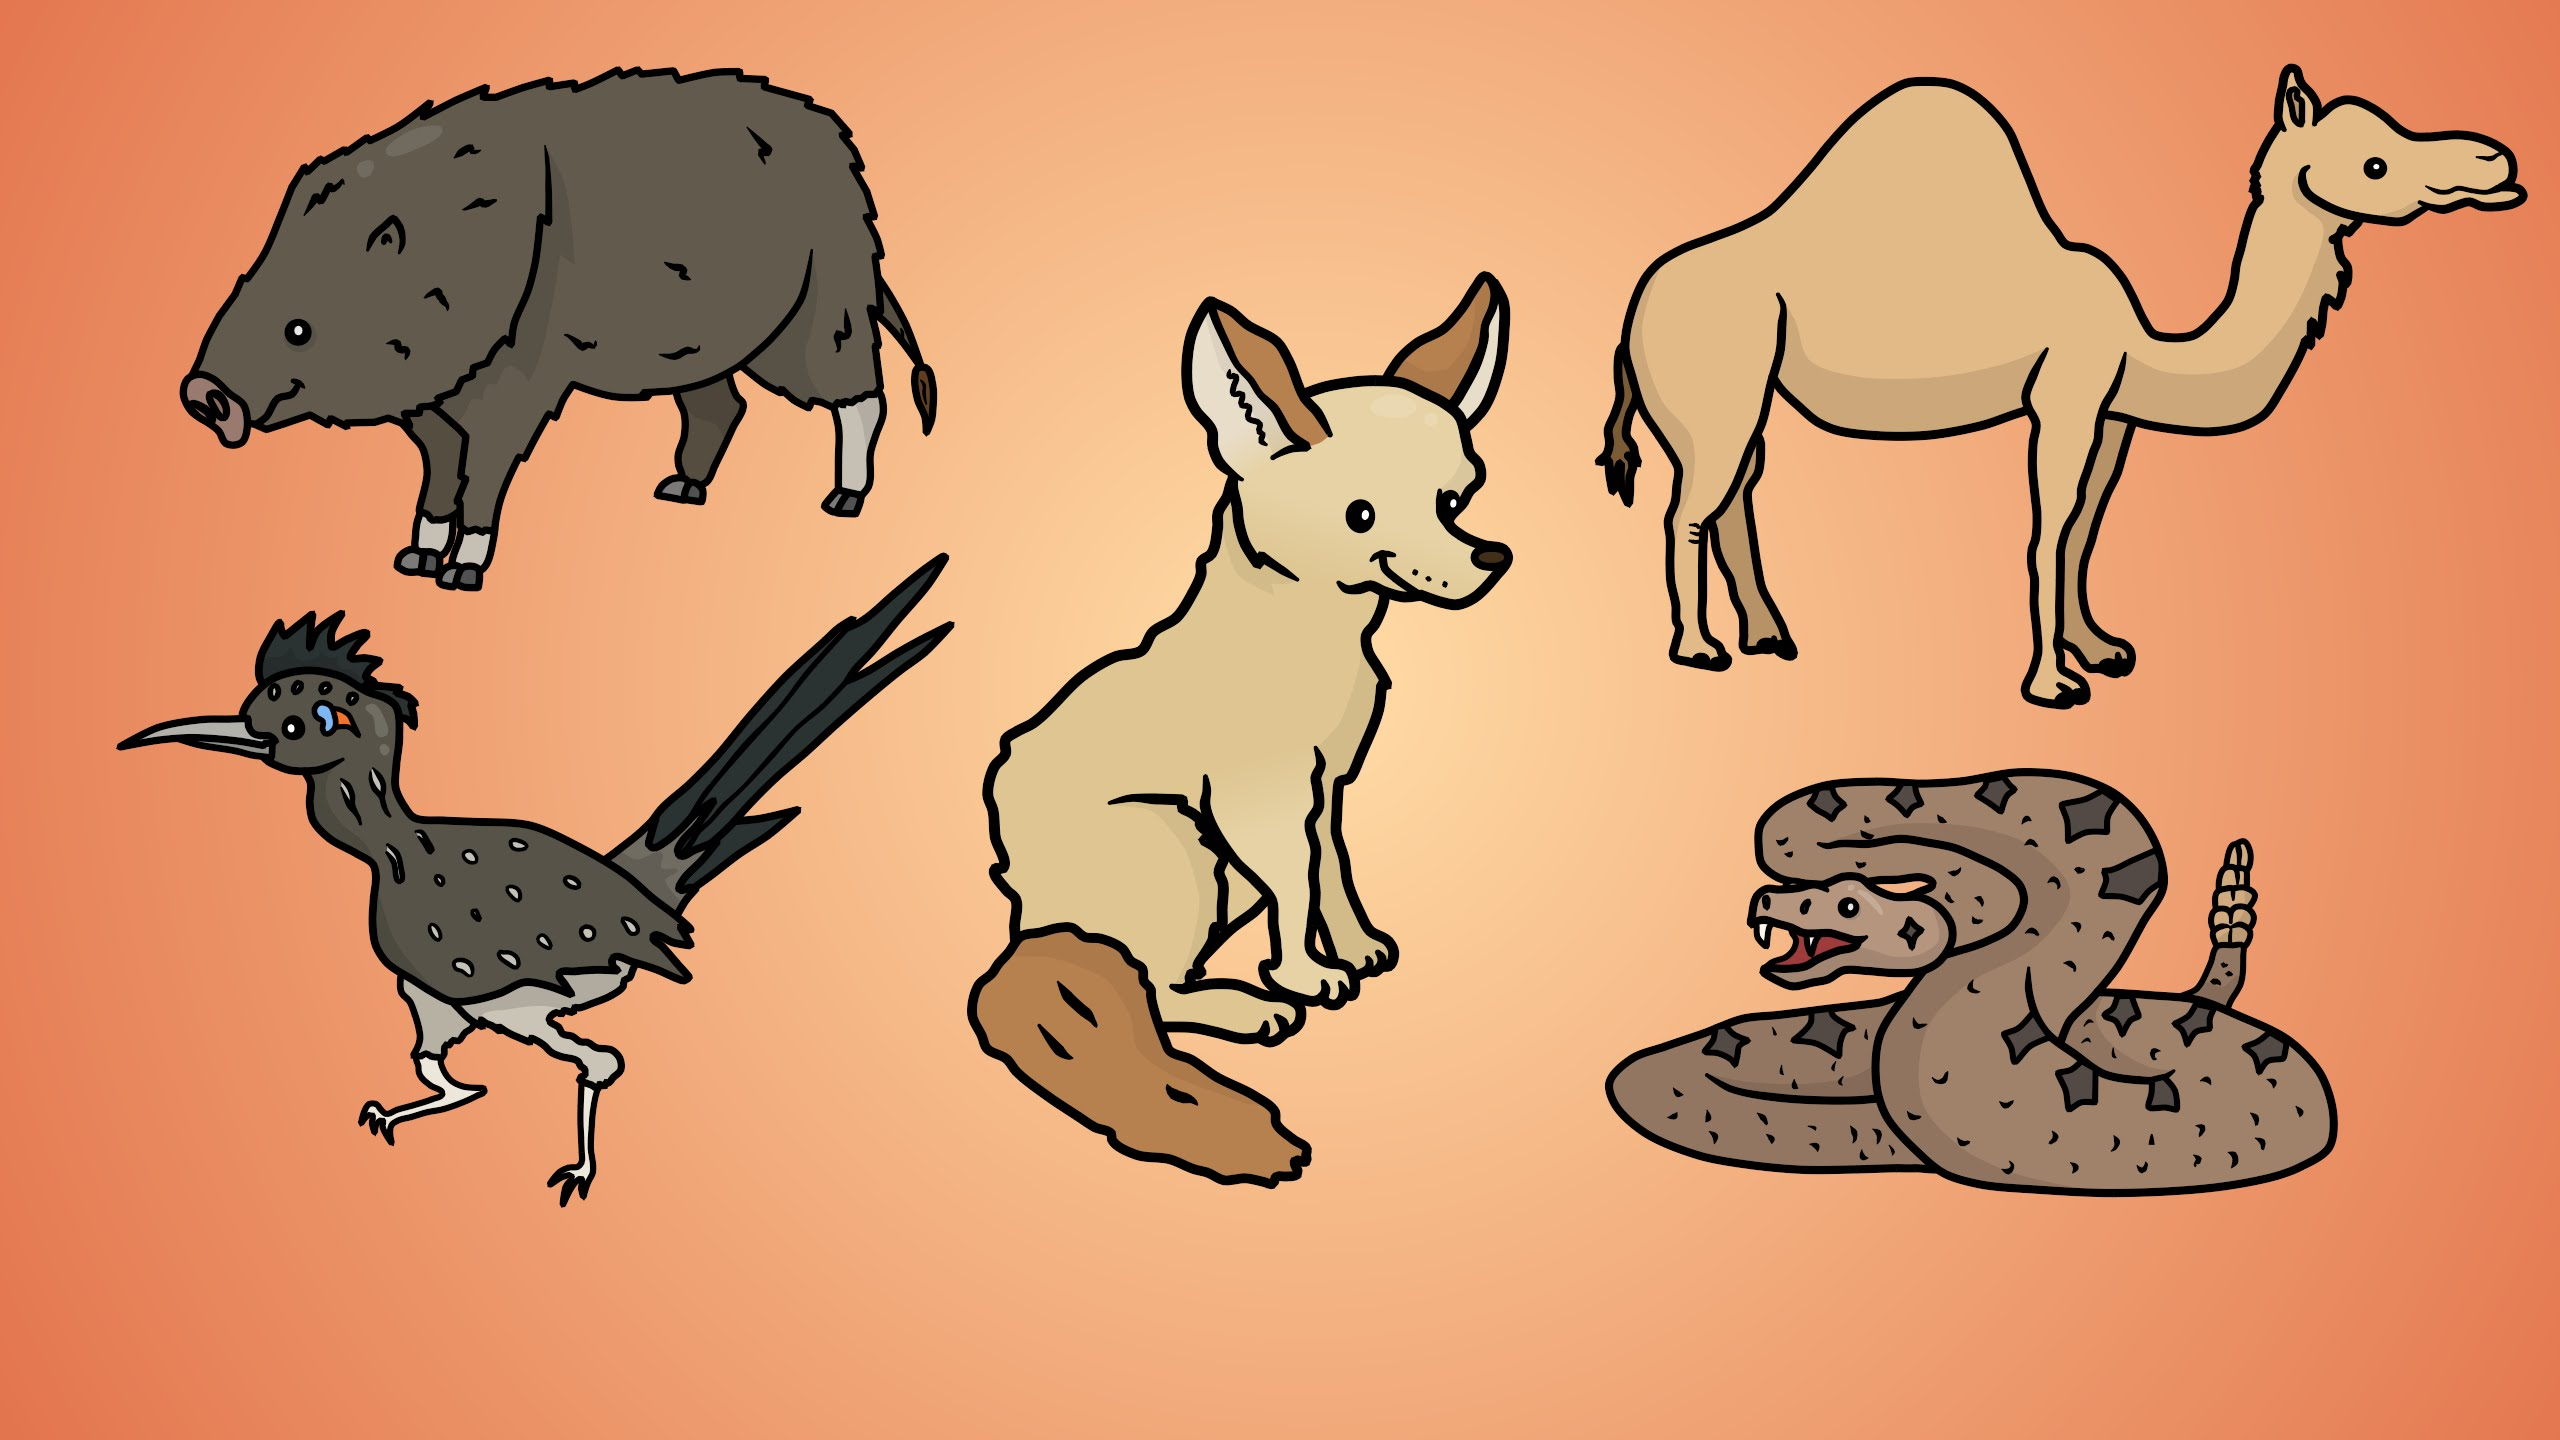 Coloring Pages Pond Animals : Desert animals drawing at getdrawings.com free for personal use